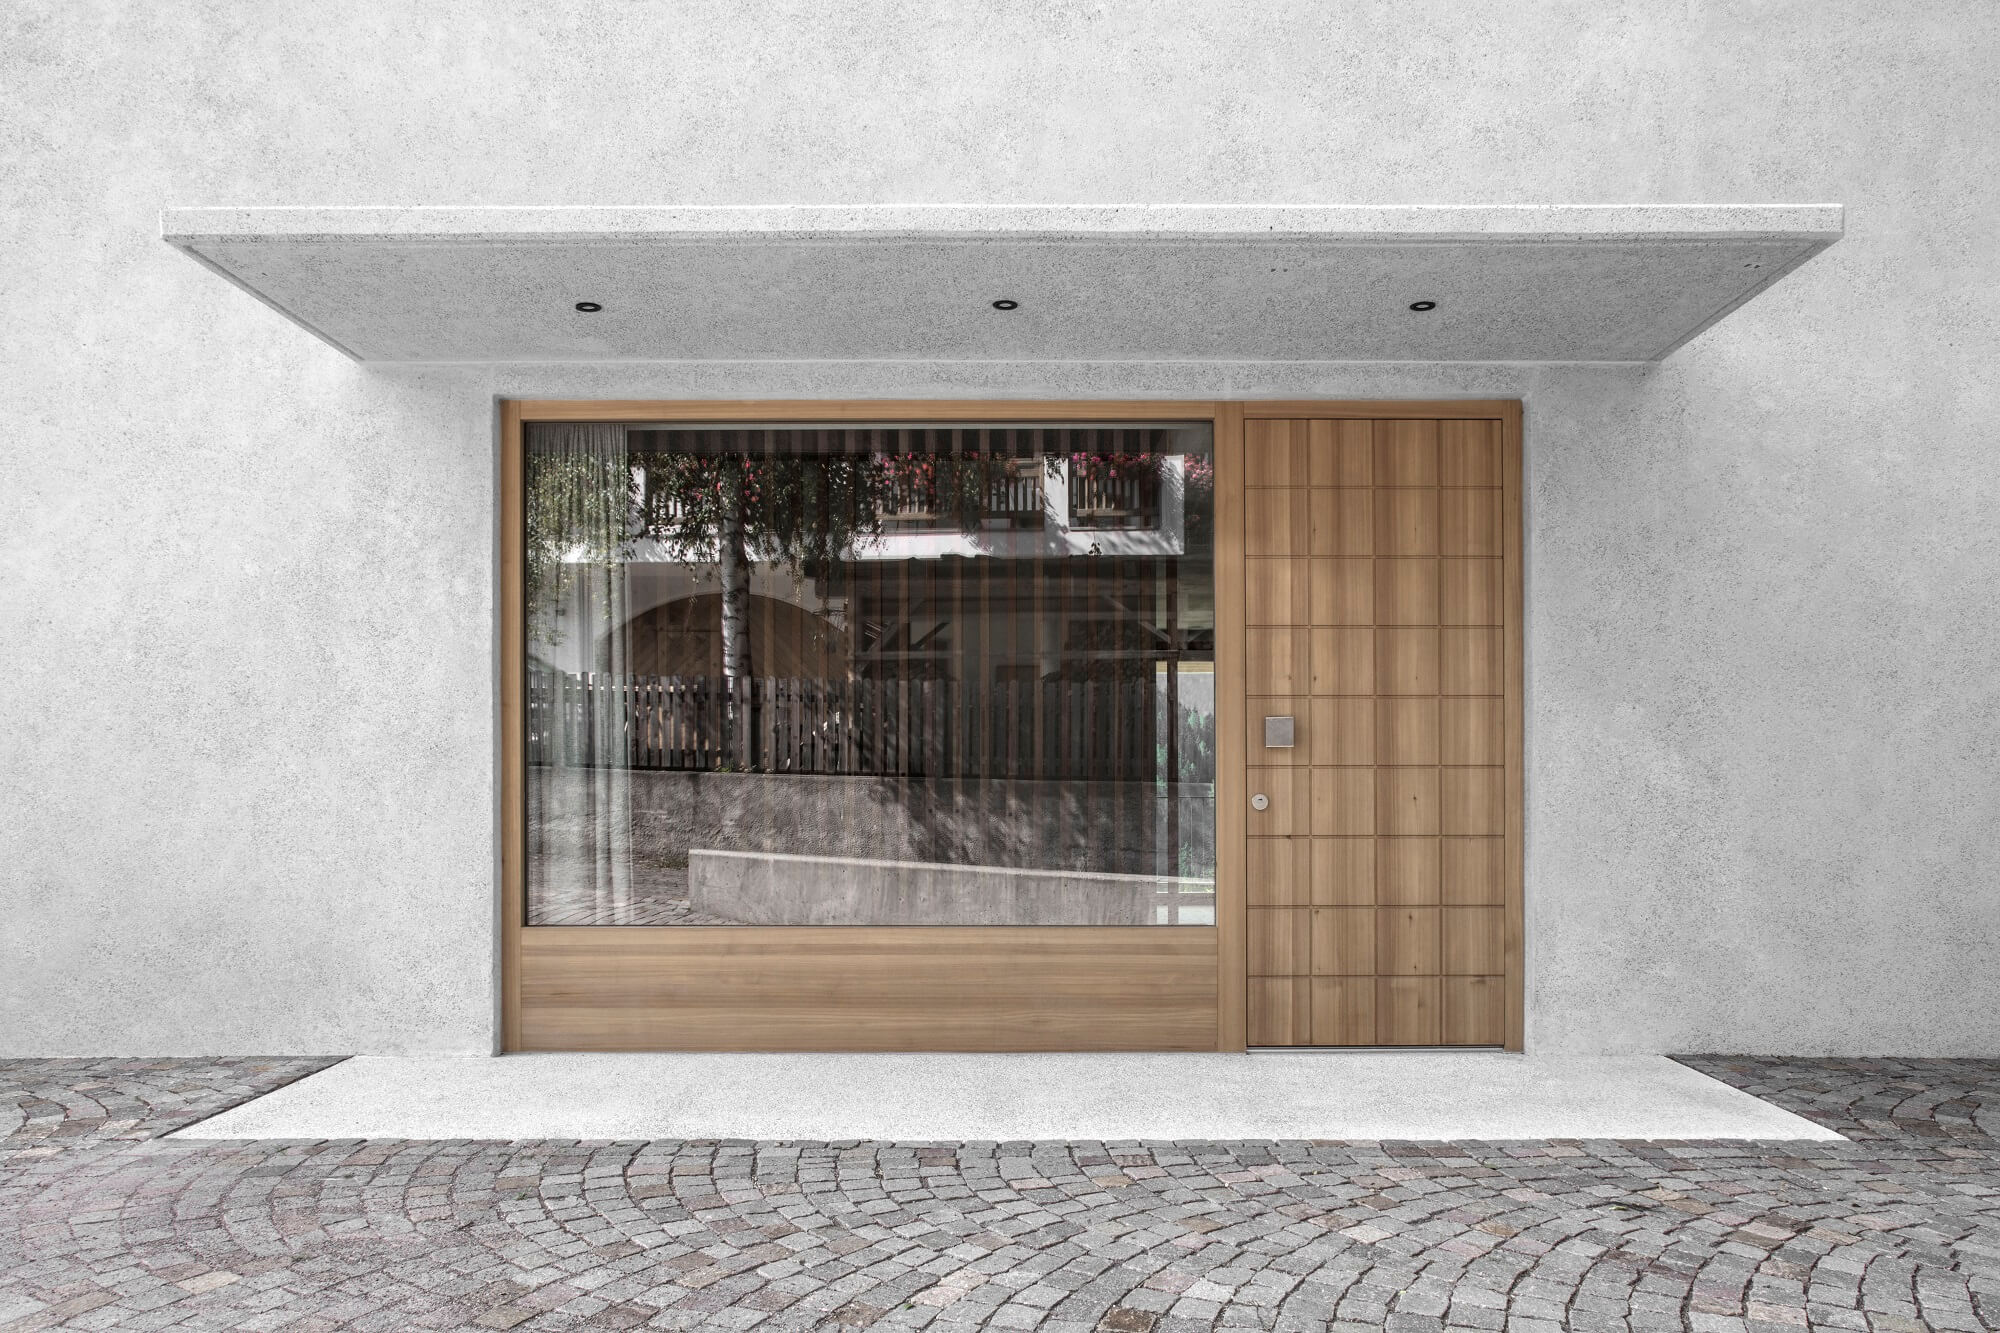 est living house hormannweg architect ellecosta 8